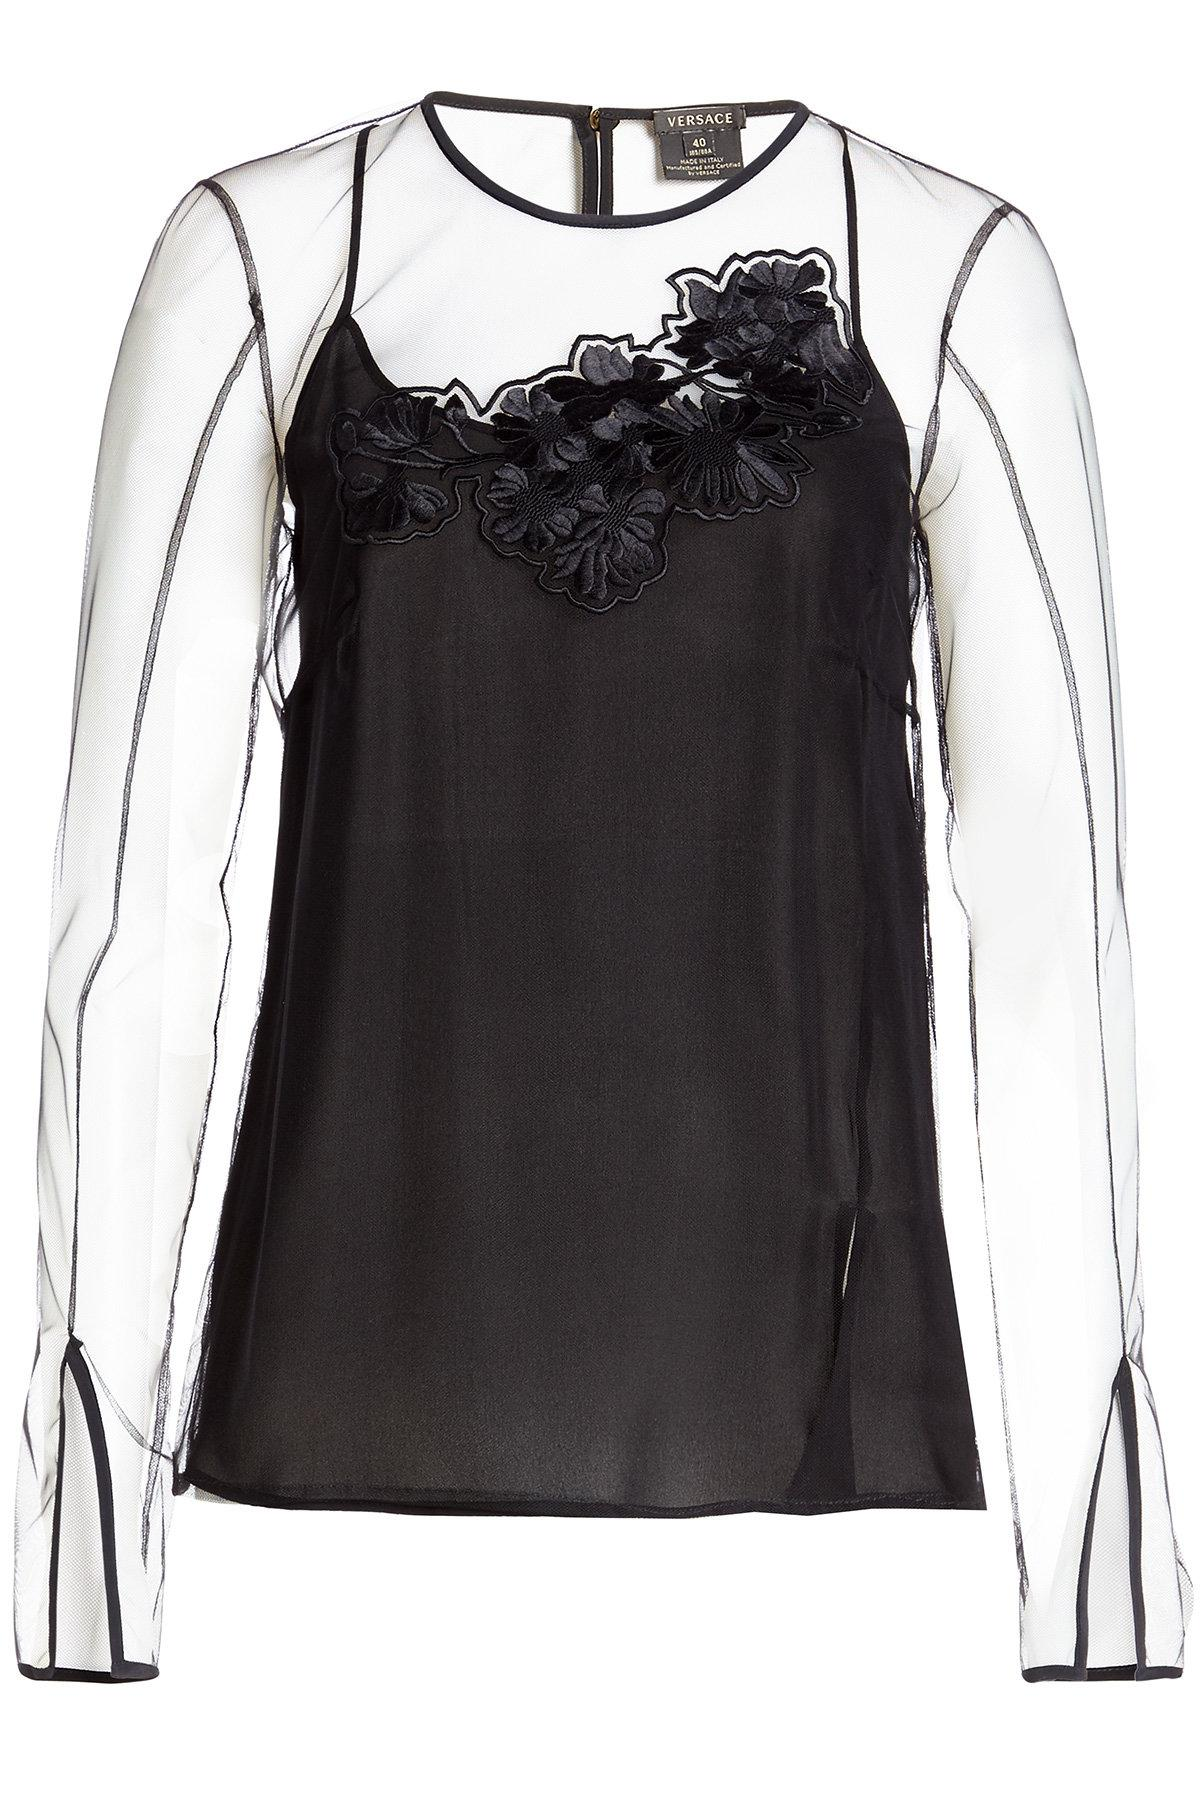 Versace Top With Sheer Overlay And Appliqu © In Black